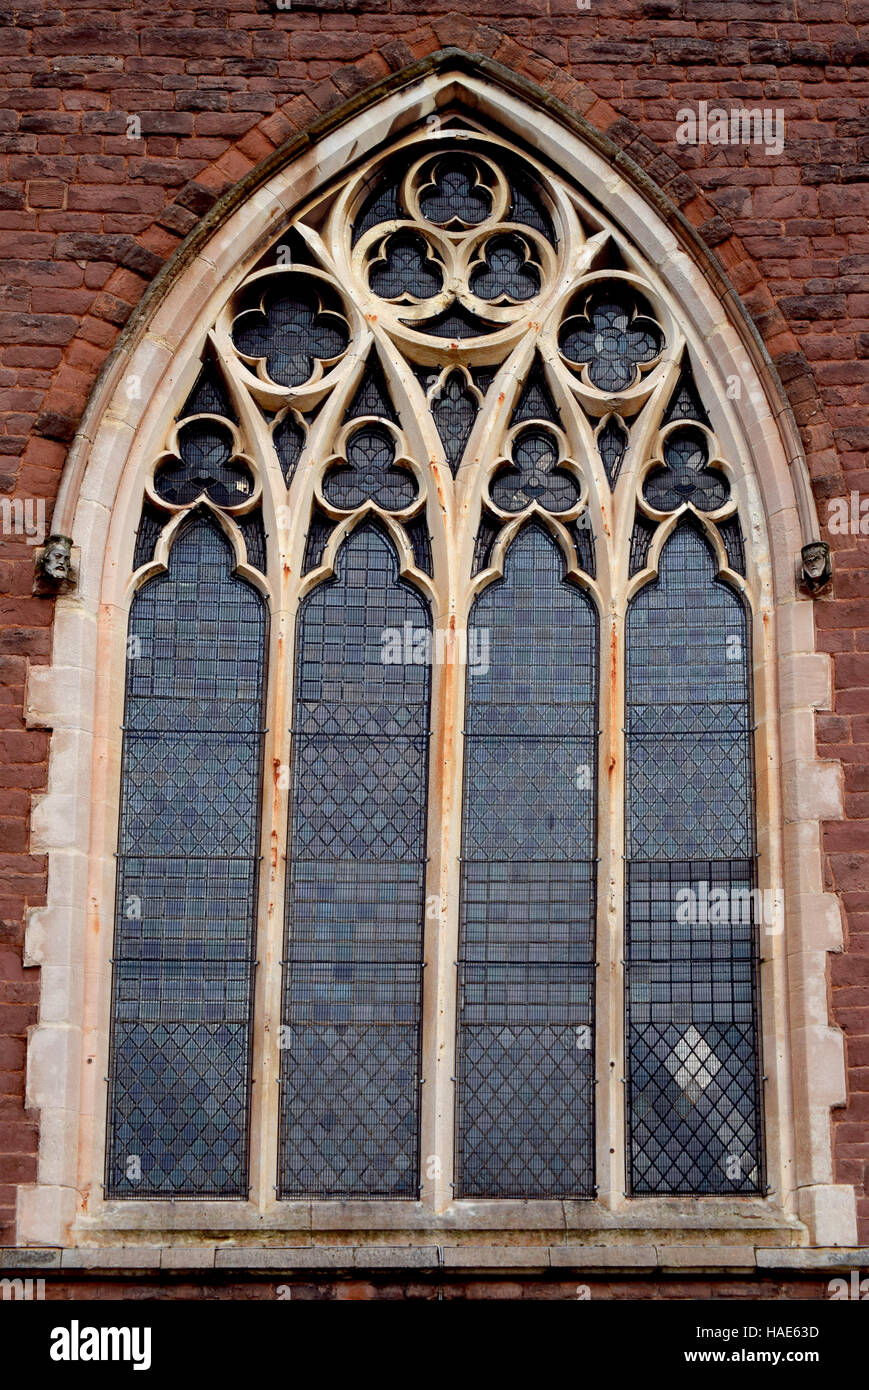 A Beautiful Design Of The Window Of The Old Church From Birmingham Stock Photo Alamy